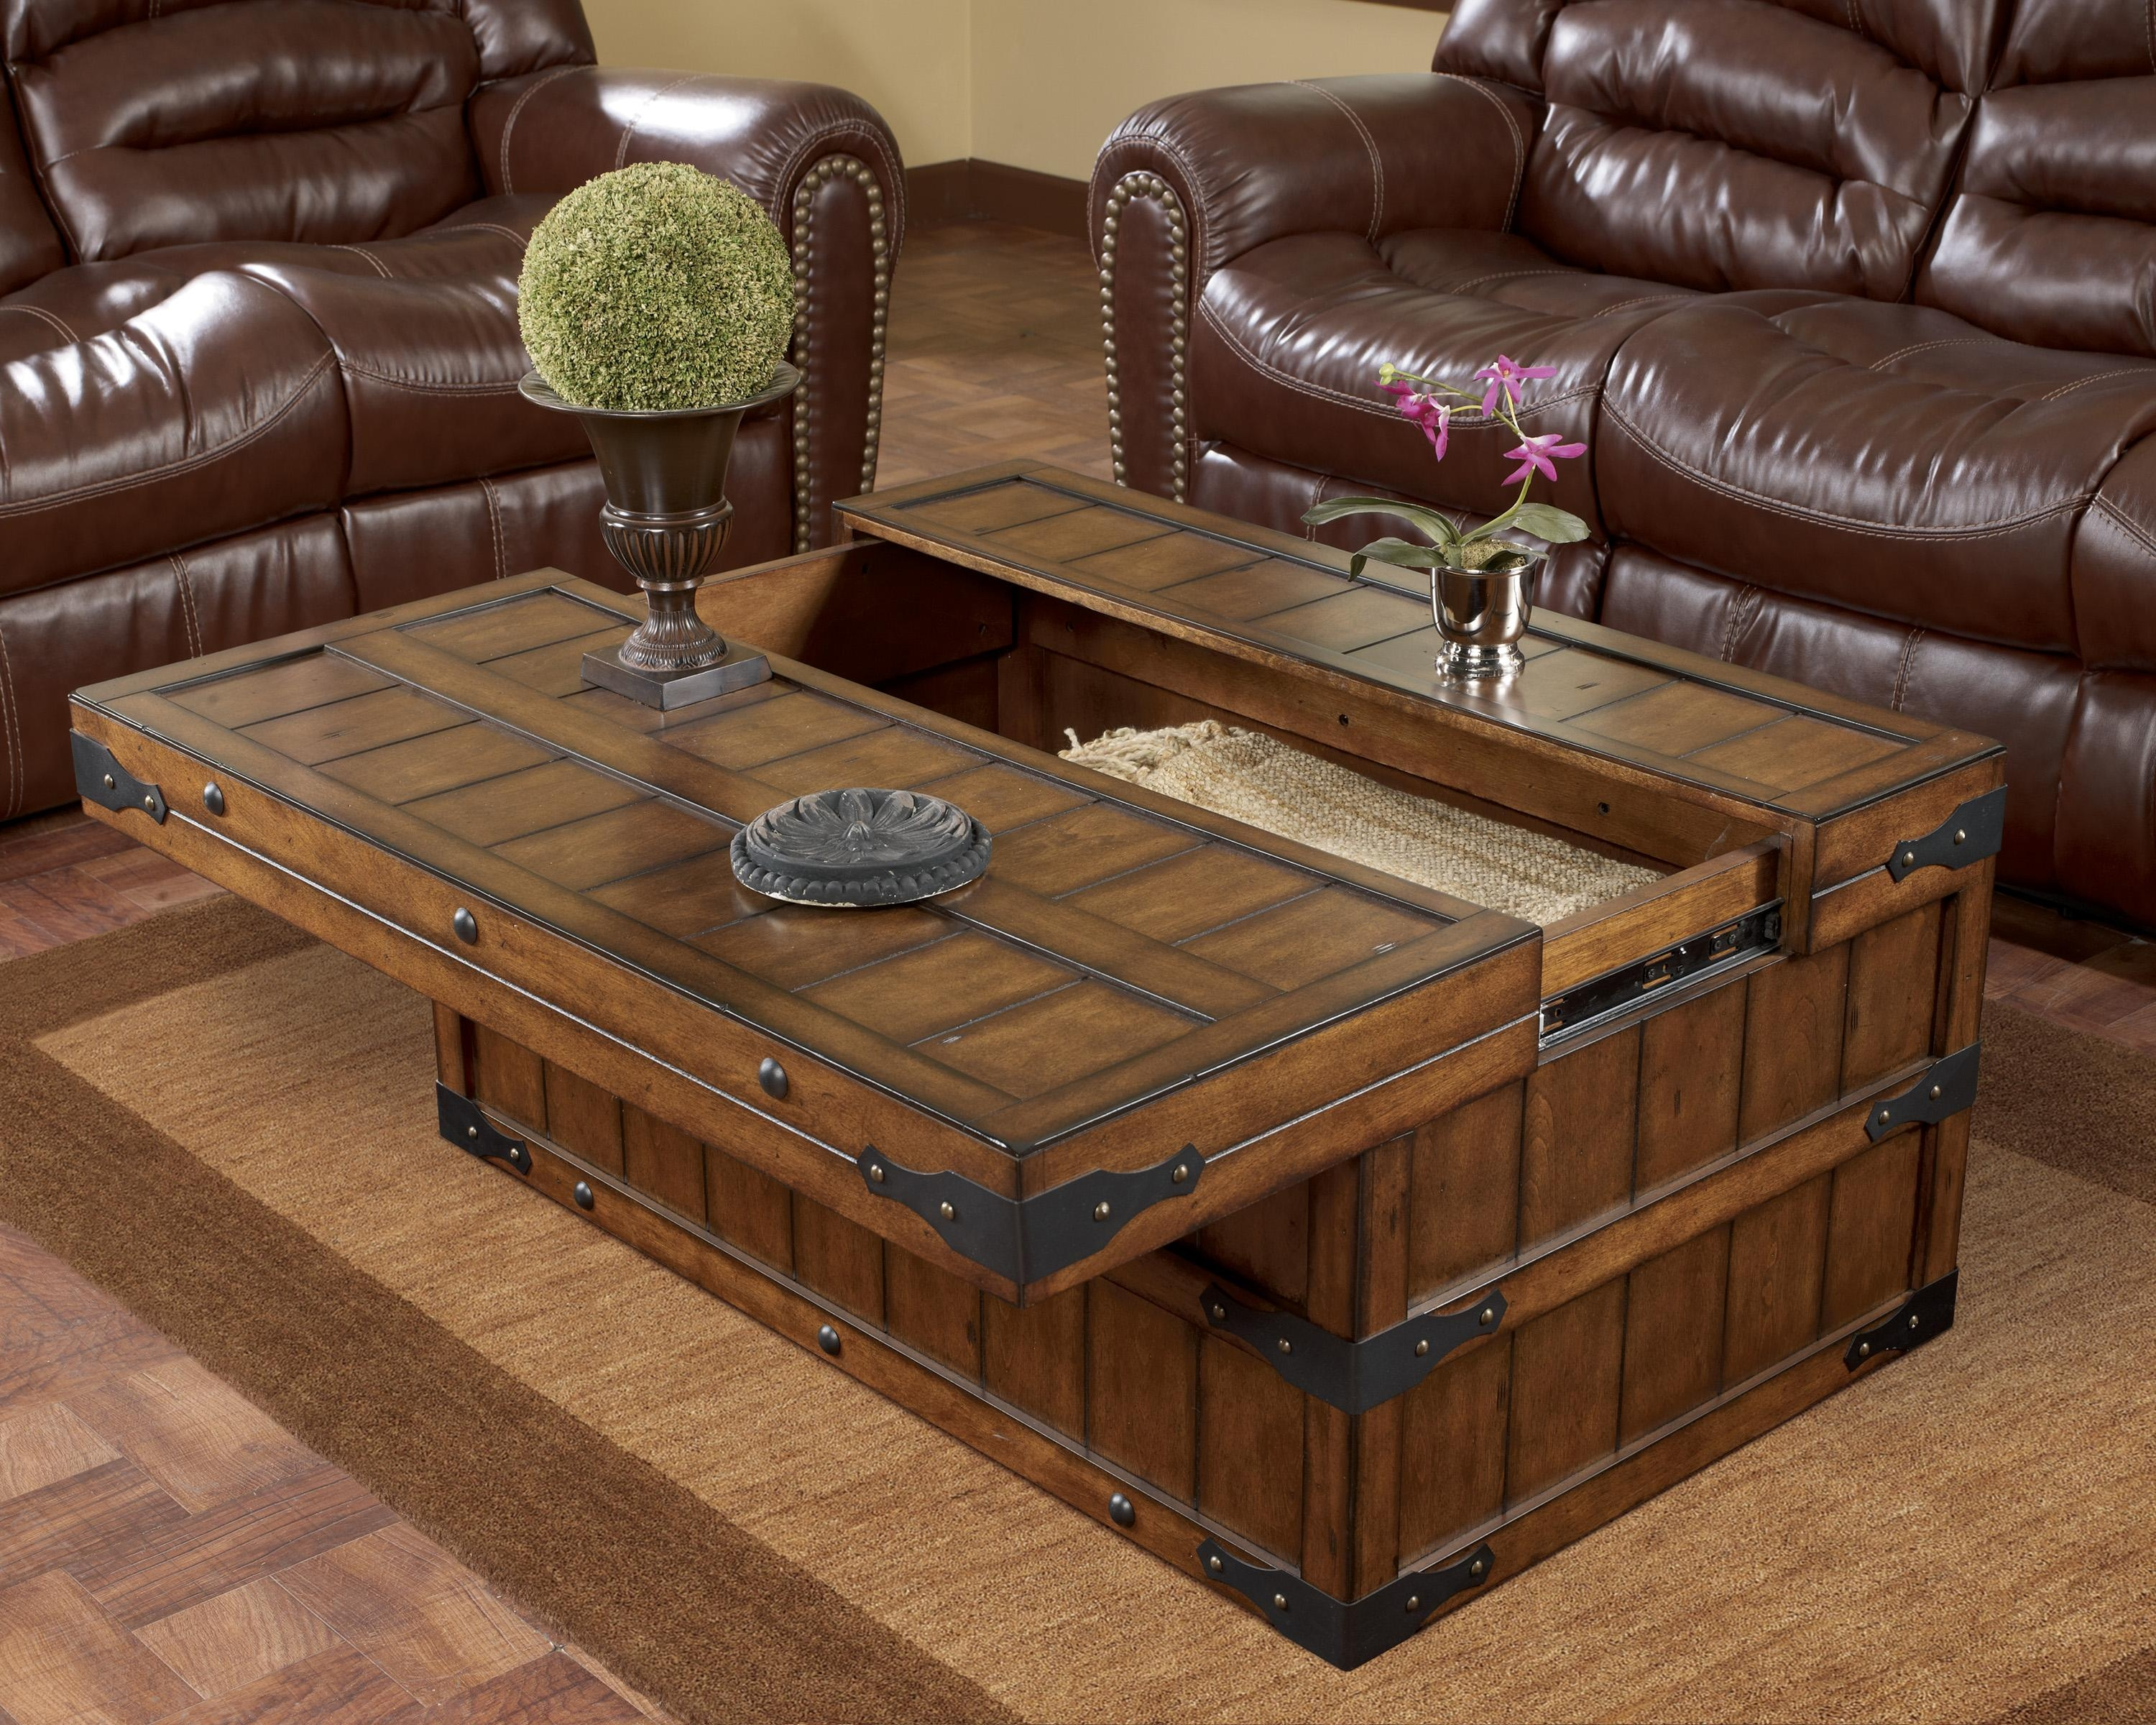 Coffee Table : Awesome Black Coffee Table Black Coffee Table Sets Regarding Sofa Side Tables With Storages (Image 5 of 25)